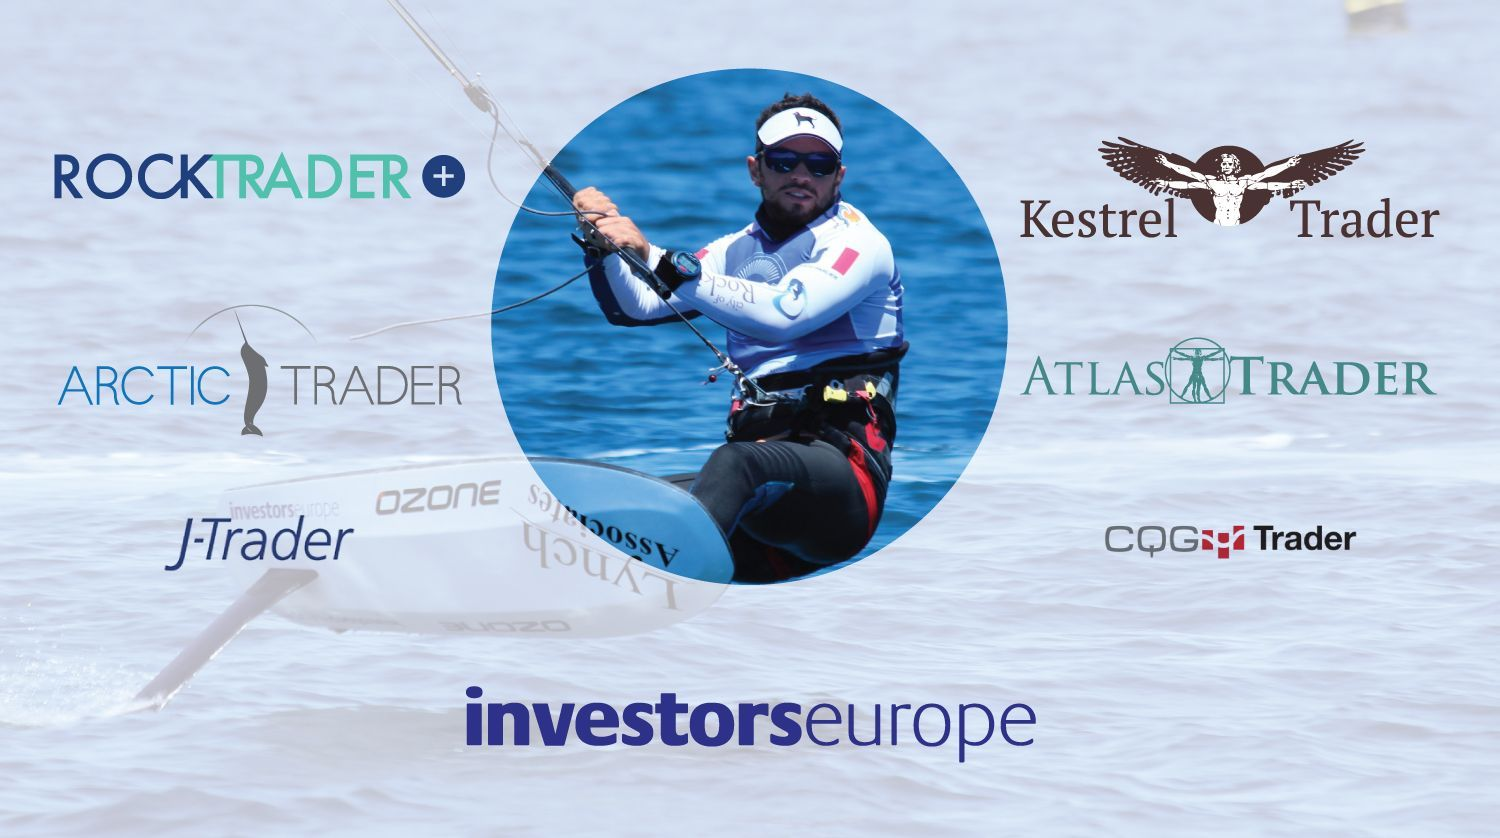 Nico Parlier, World Hydrofoil Champion, is Sponsored by Investors Europe, World Online Trading PLatform Champions!